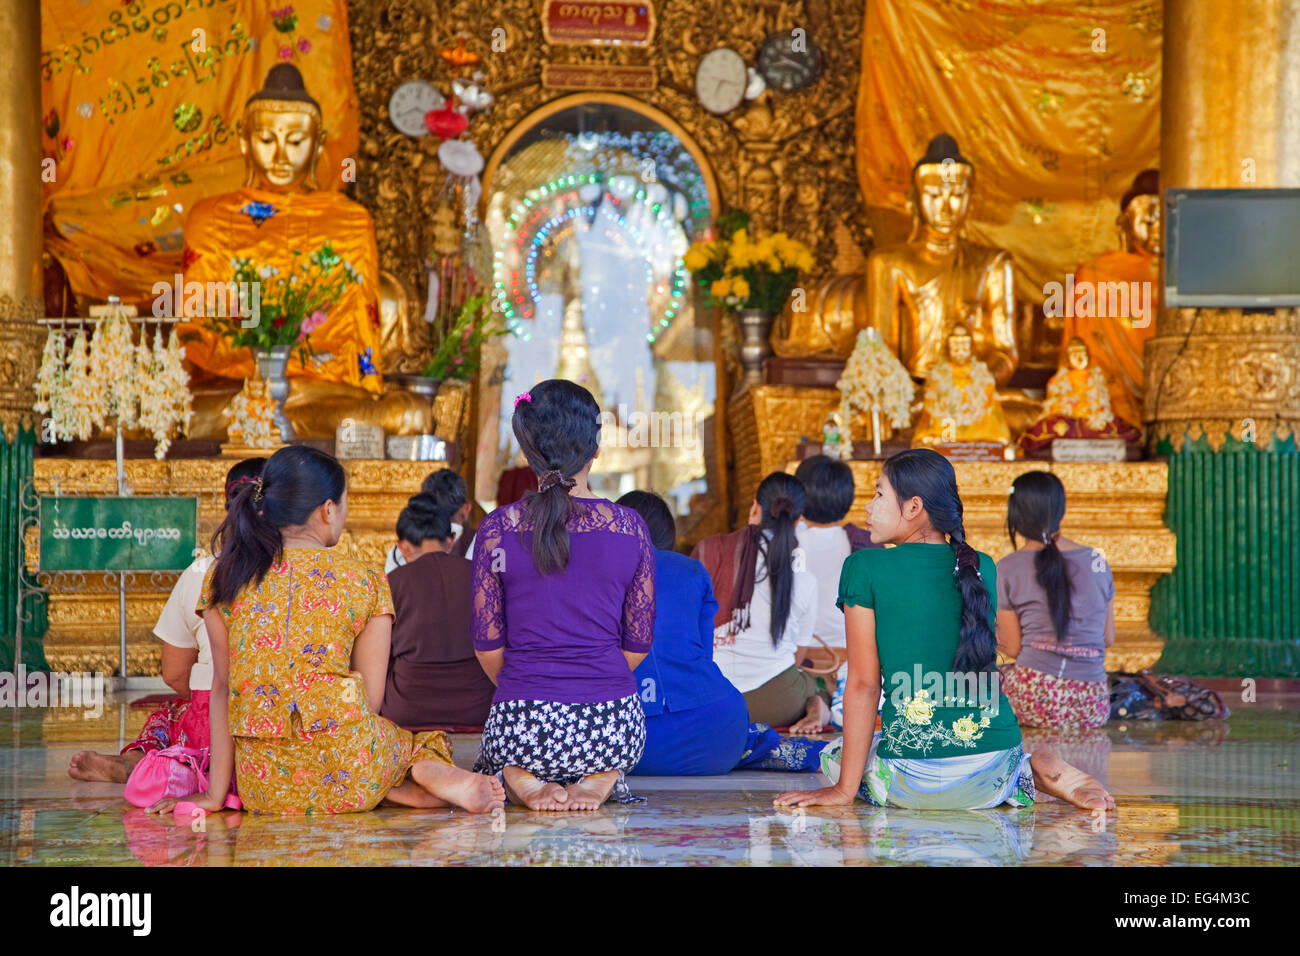 Burmese women praying barefooted in the Shwedagon Zedi Daw Pagoda at Yangon / Rangoon, former capital city of  Myanmar - Stock Image